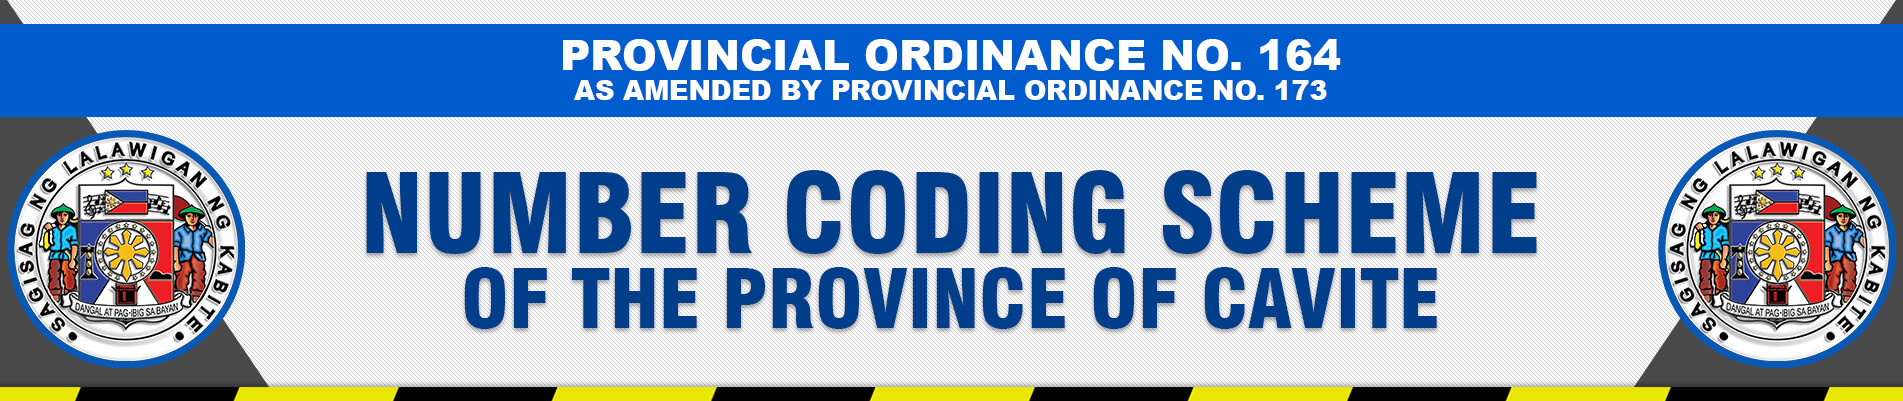 Number Coding Scheme of the Province of Cavite